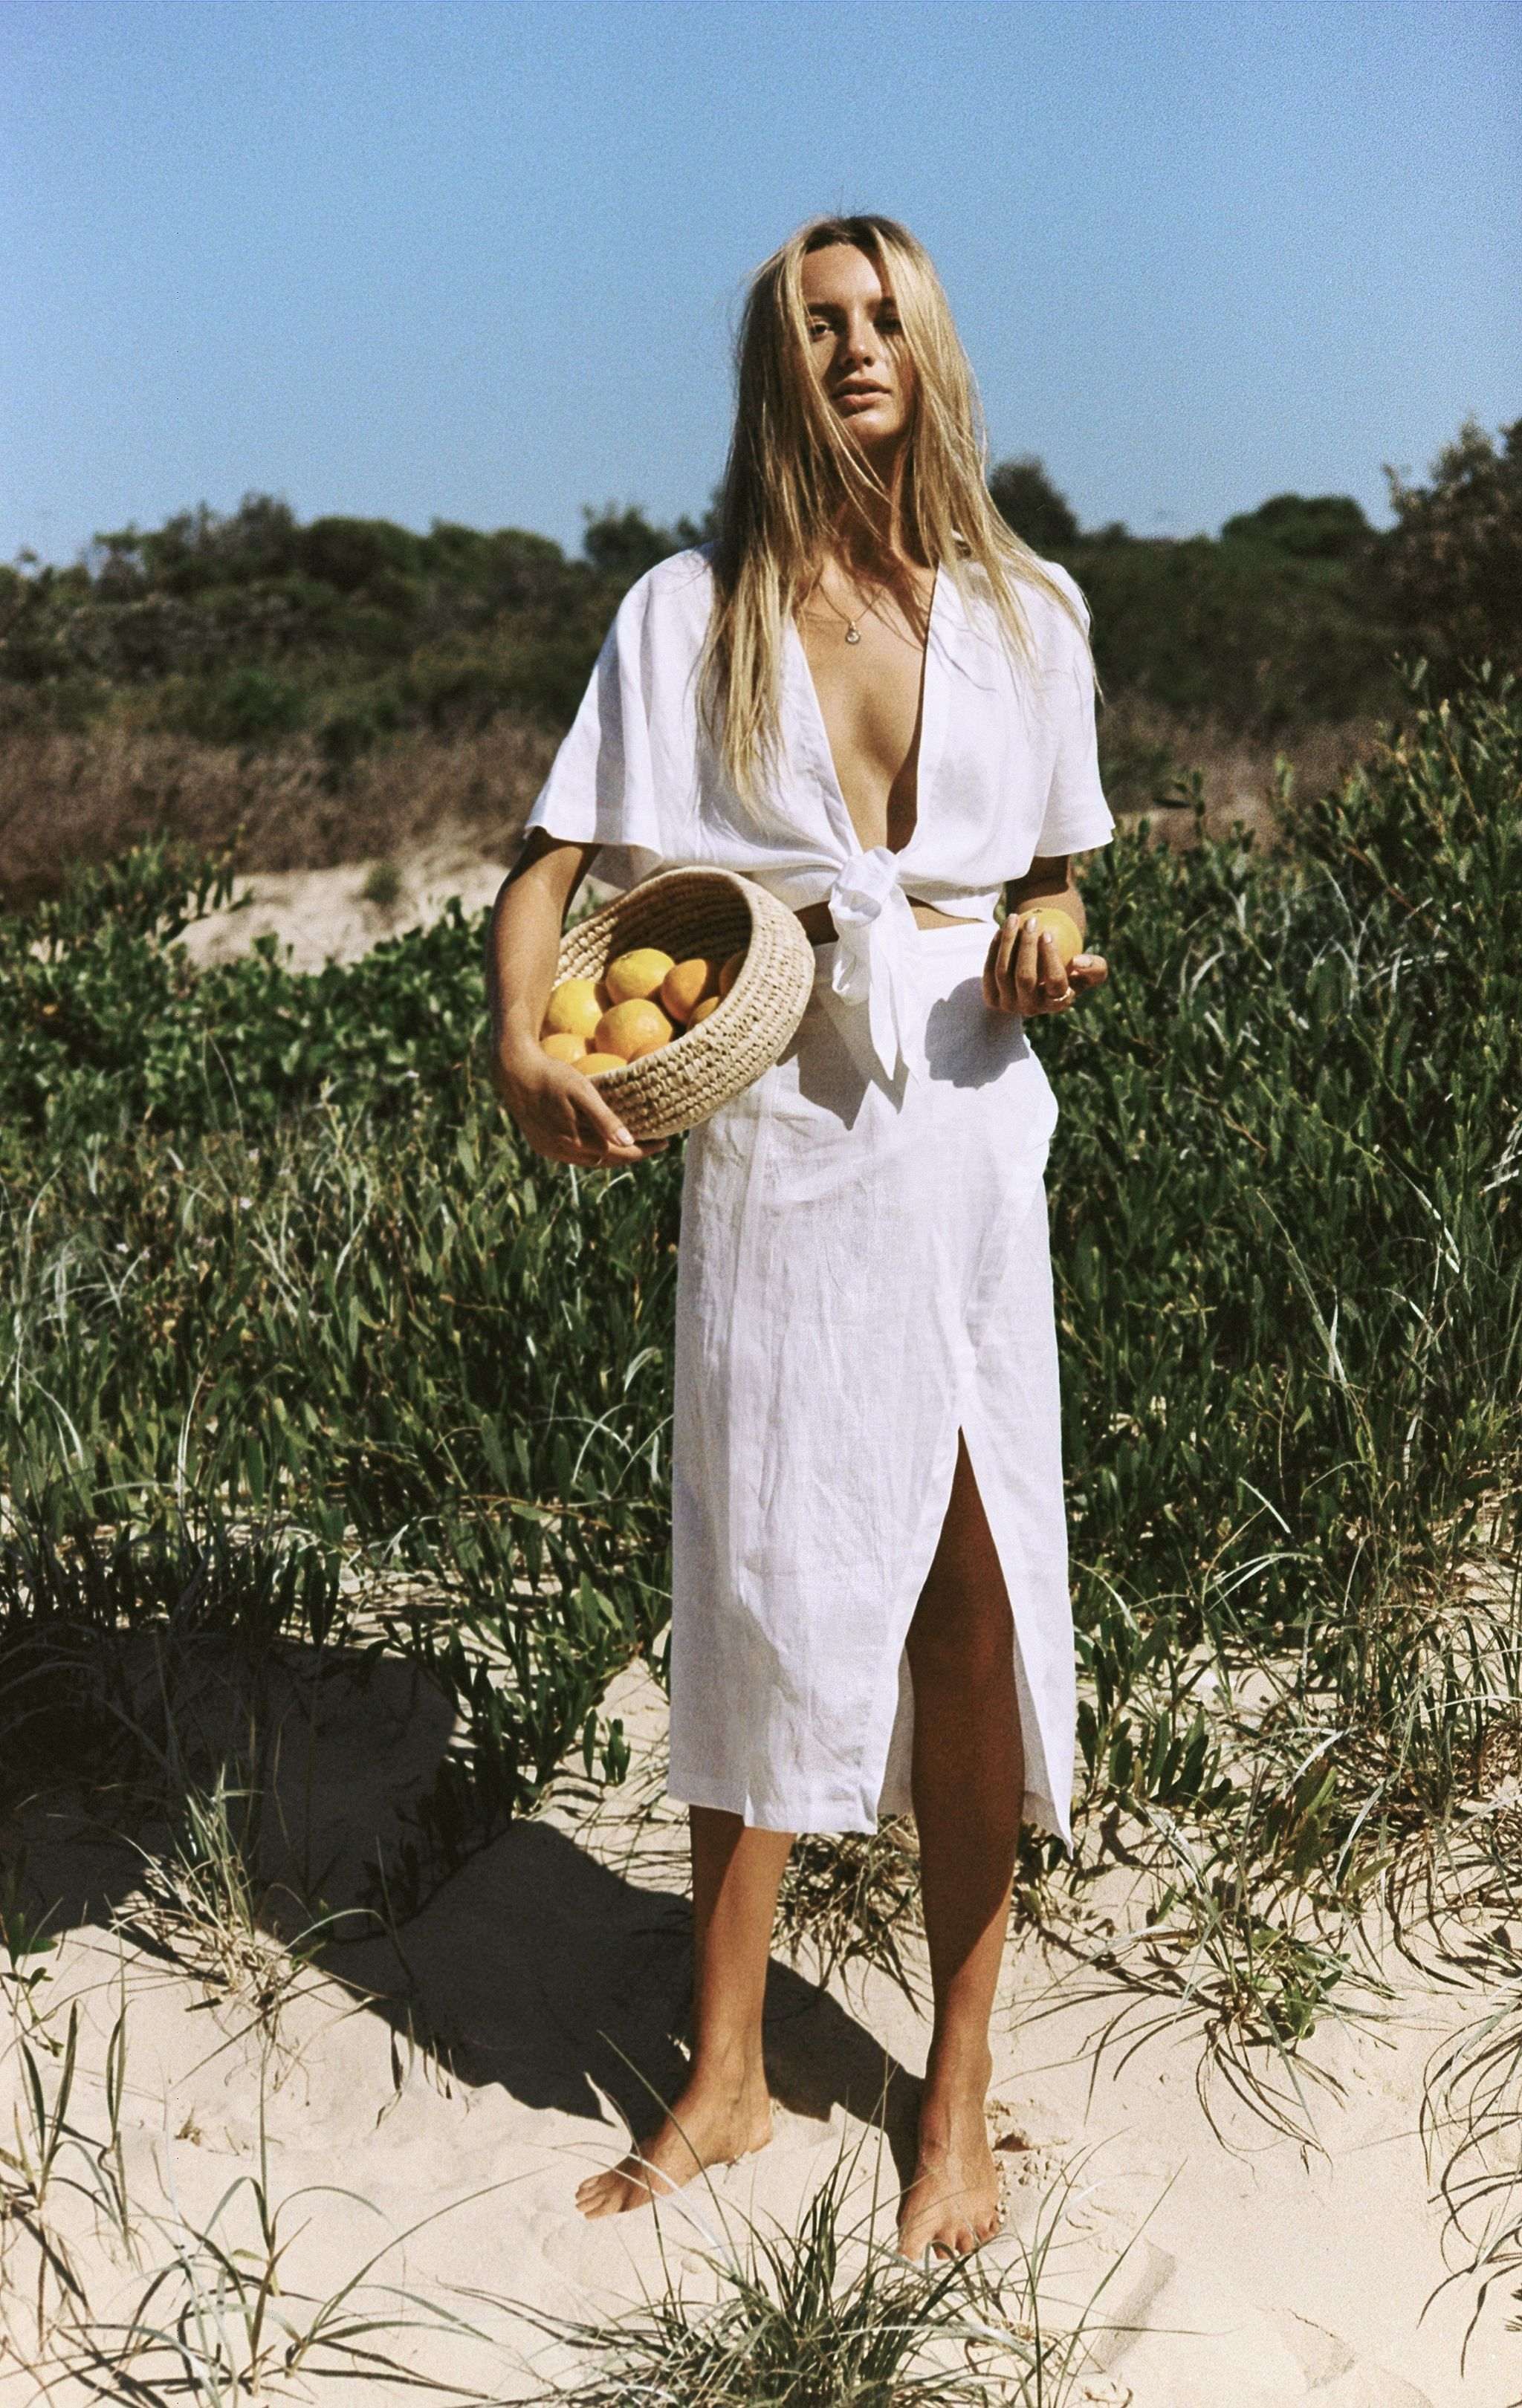 Maya Stepper Stars In The Ultra Beachy Inspo For Australian Womens Fashion Brand Sir The Label Photographed By Brymack